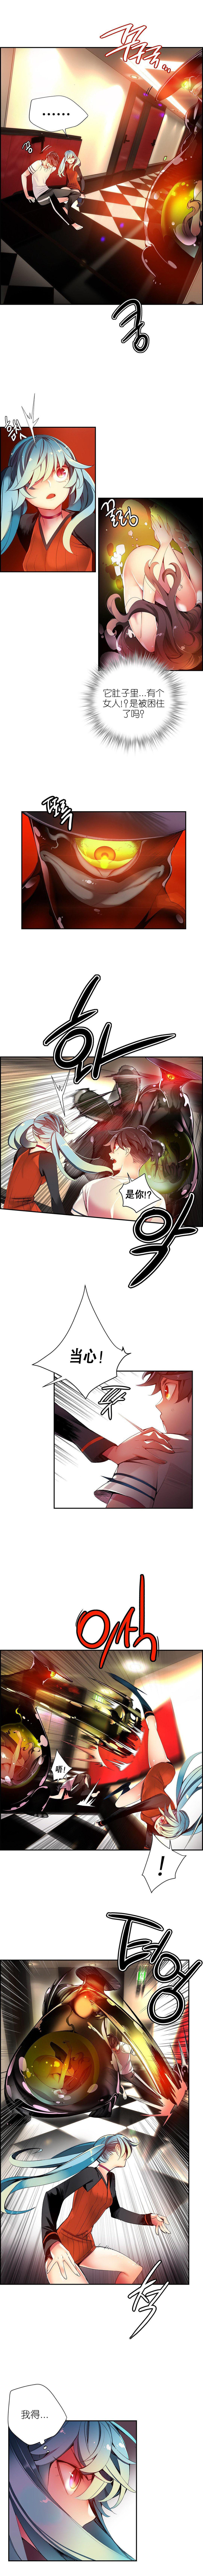 Lilith`s Cord   莉莉丝的脐带 Ch.1-37 469